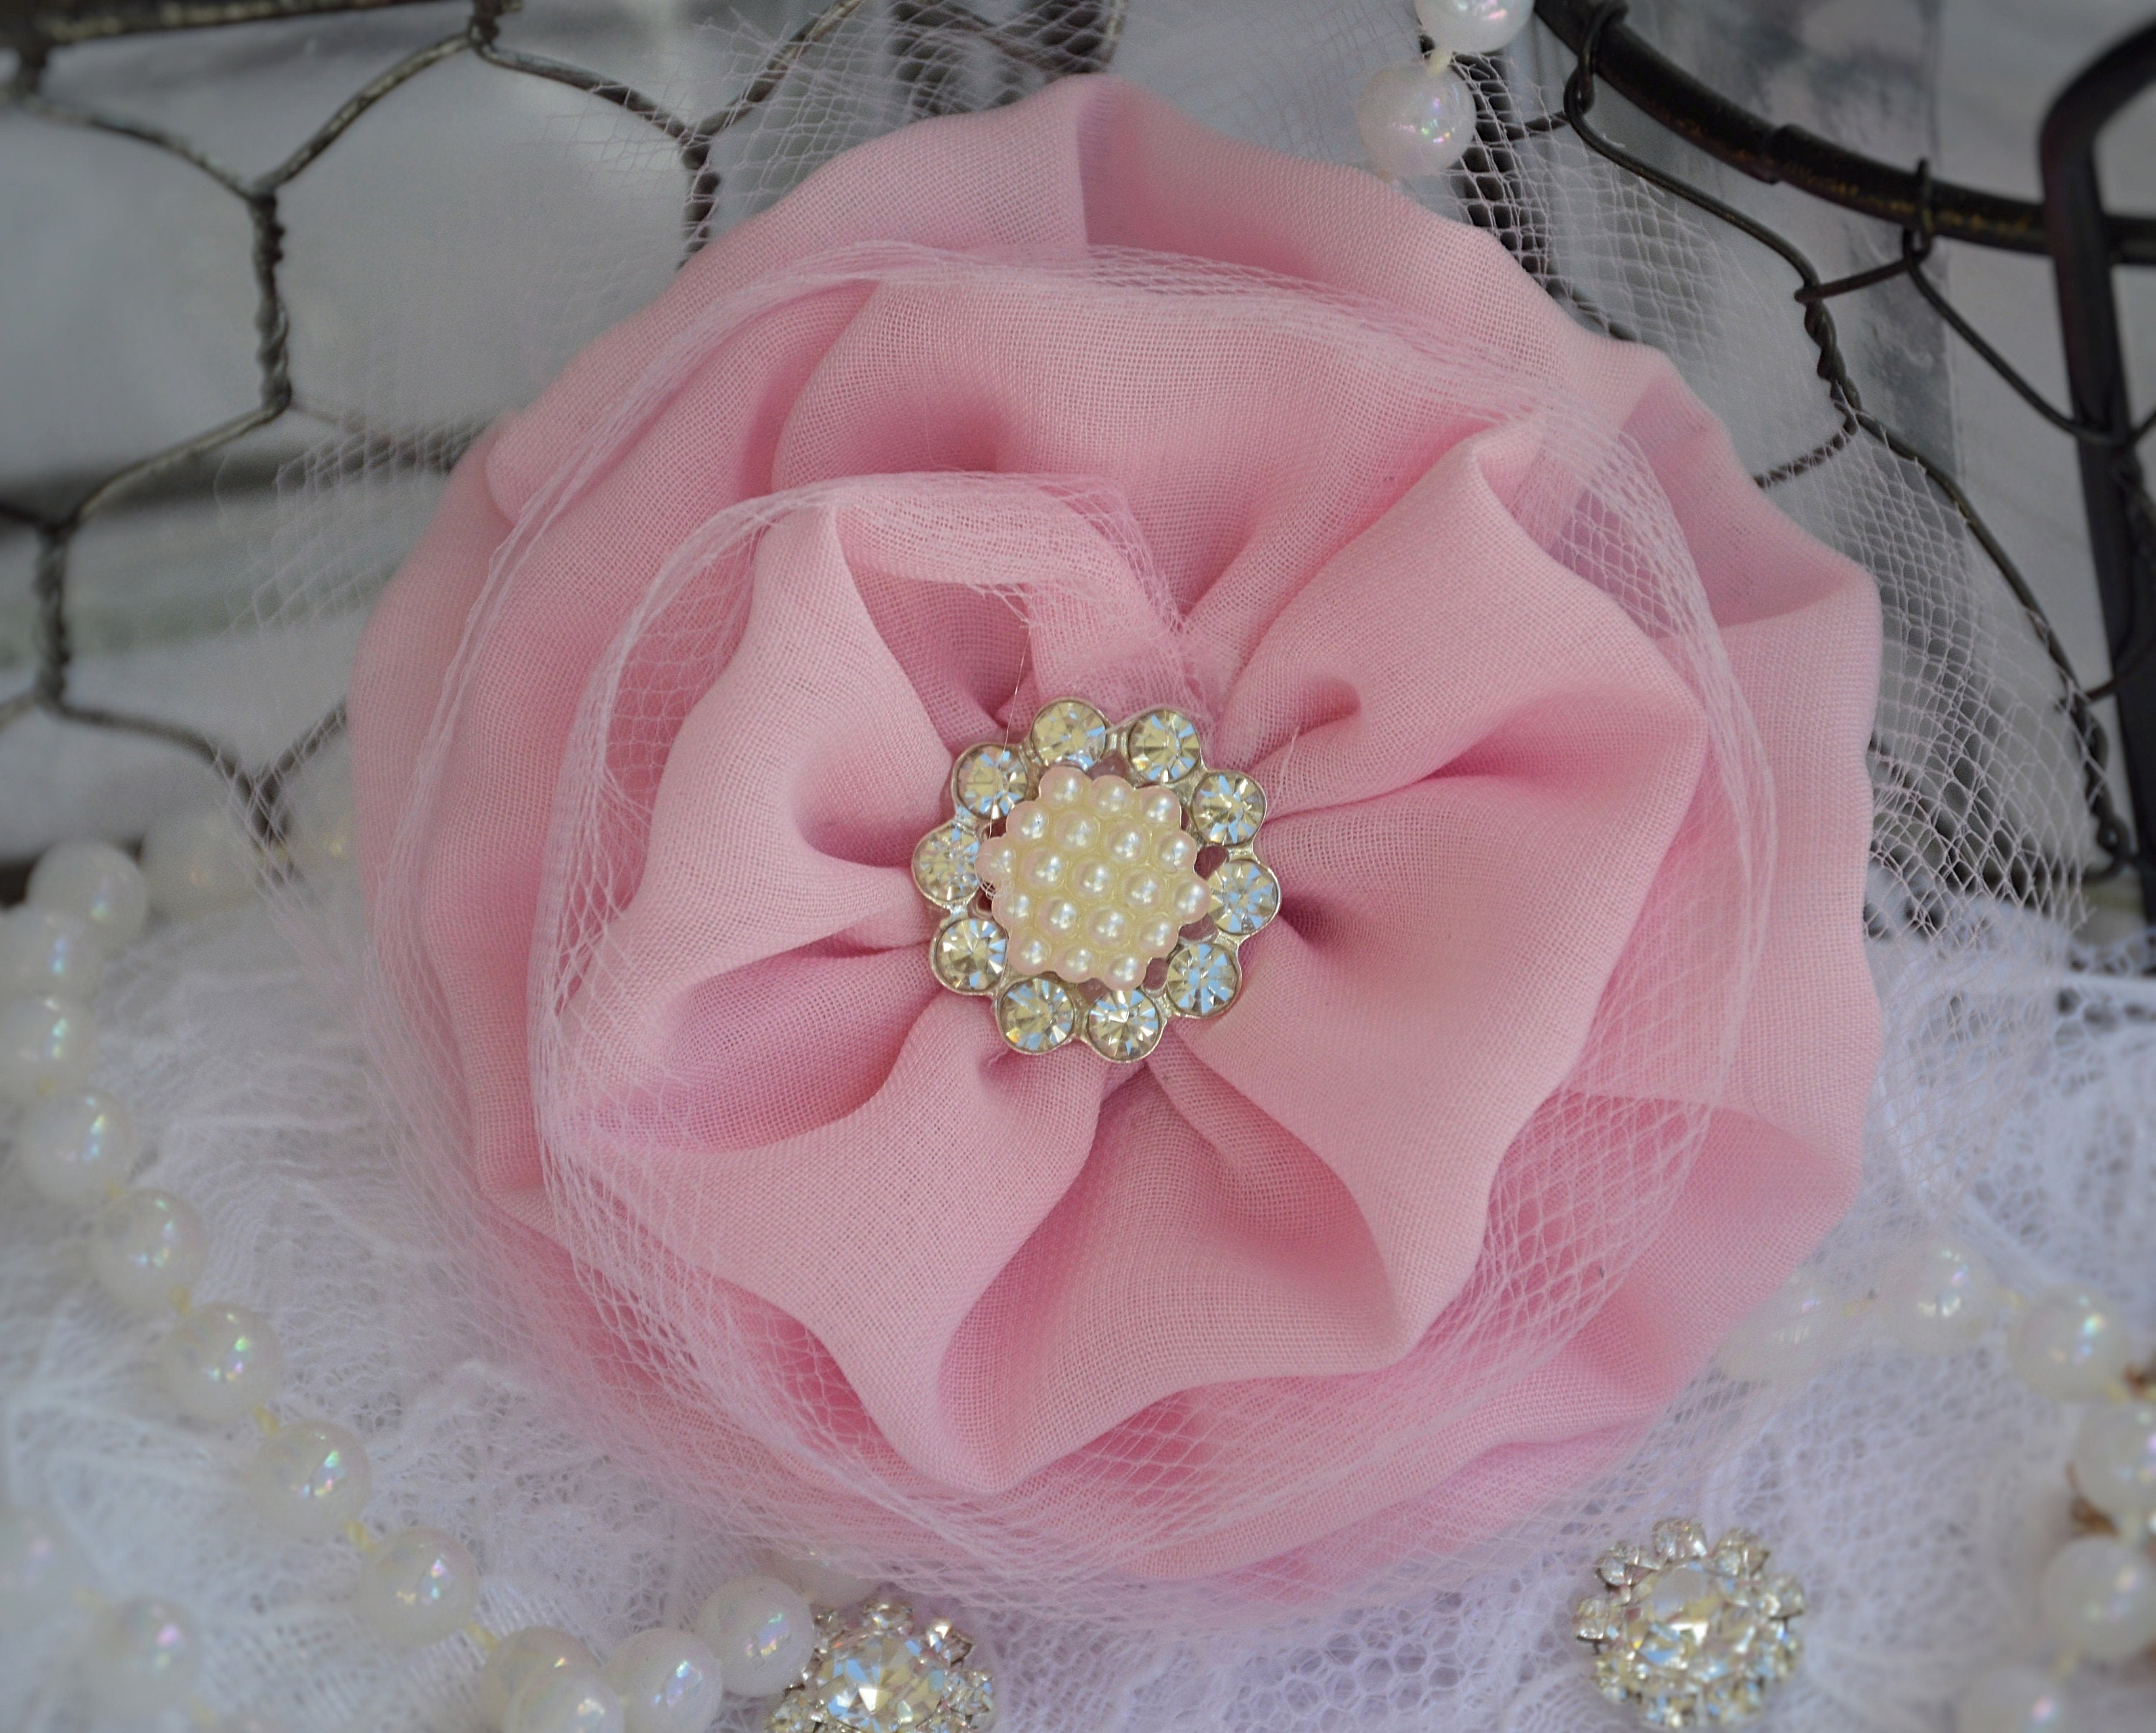 Rose Pink Chiffon Tulle Flowers Fabric Flowers 3 Etsy